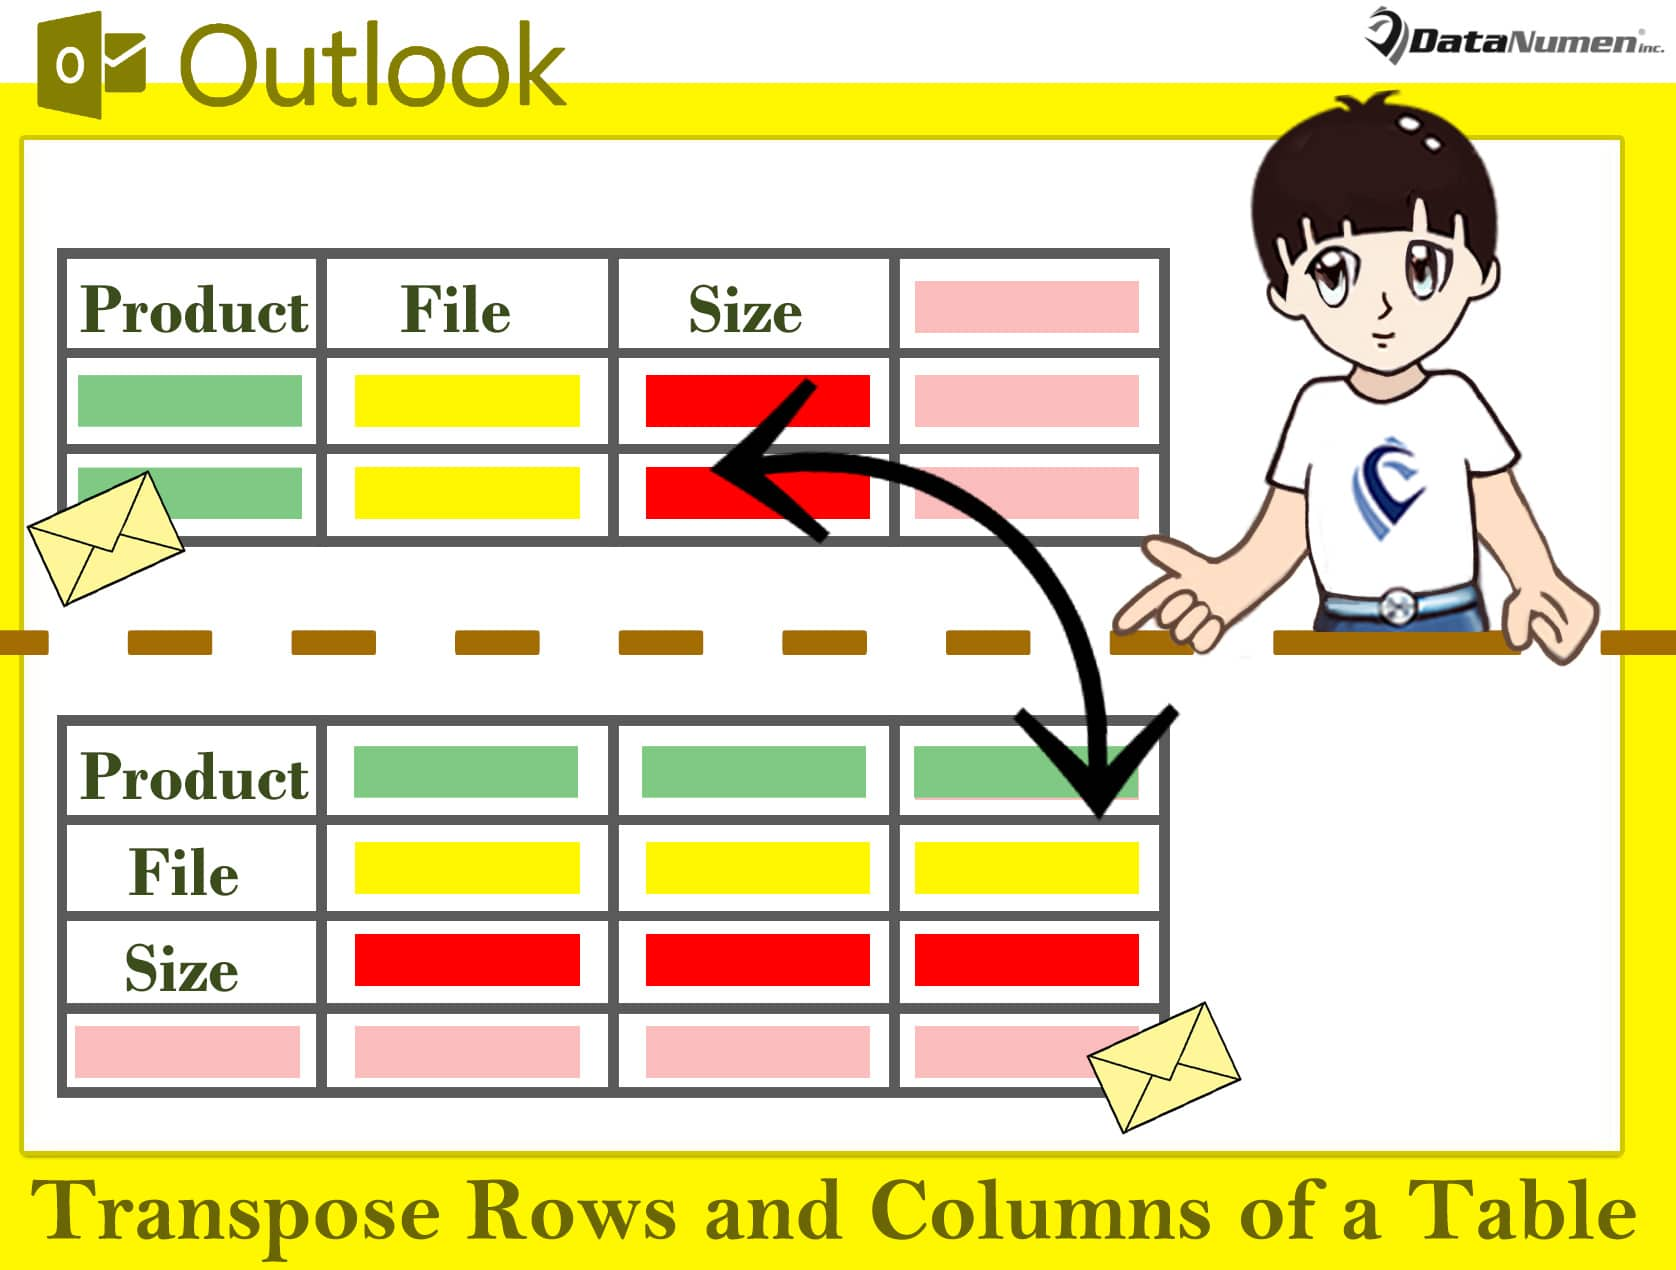 Quickly Transpose the Rows and Columns of a Table in Your Outlook Email